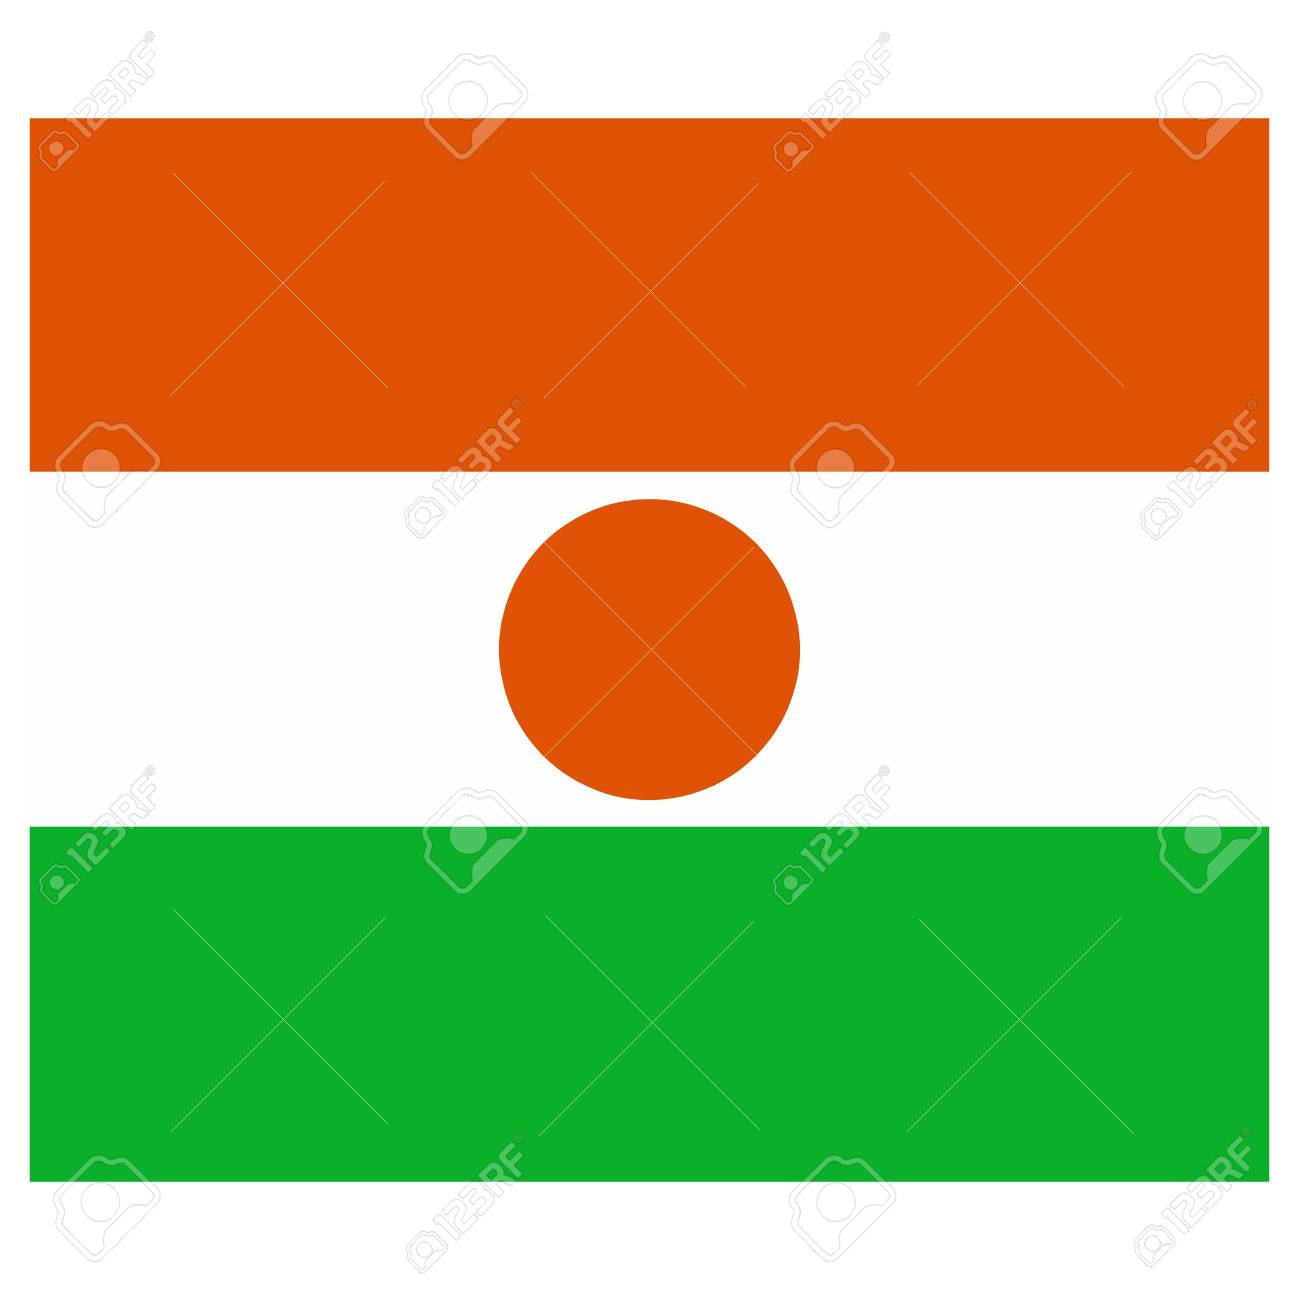 Vector illustration of the flag of Niger Stock Vector - 13340863